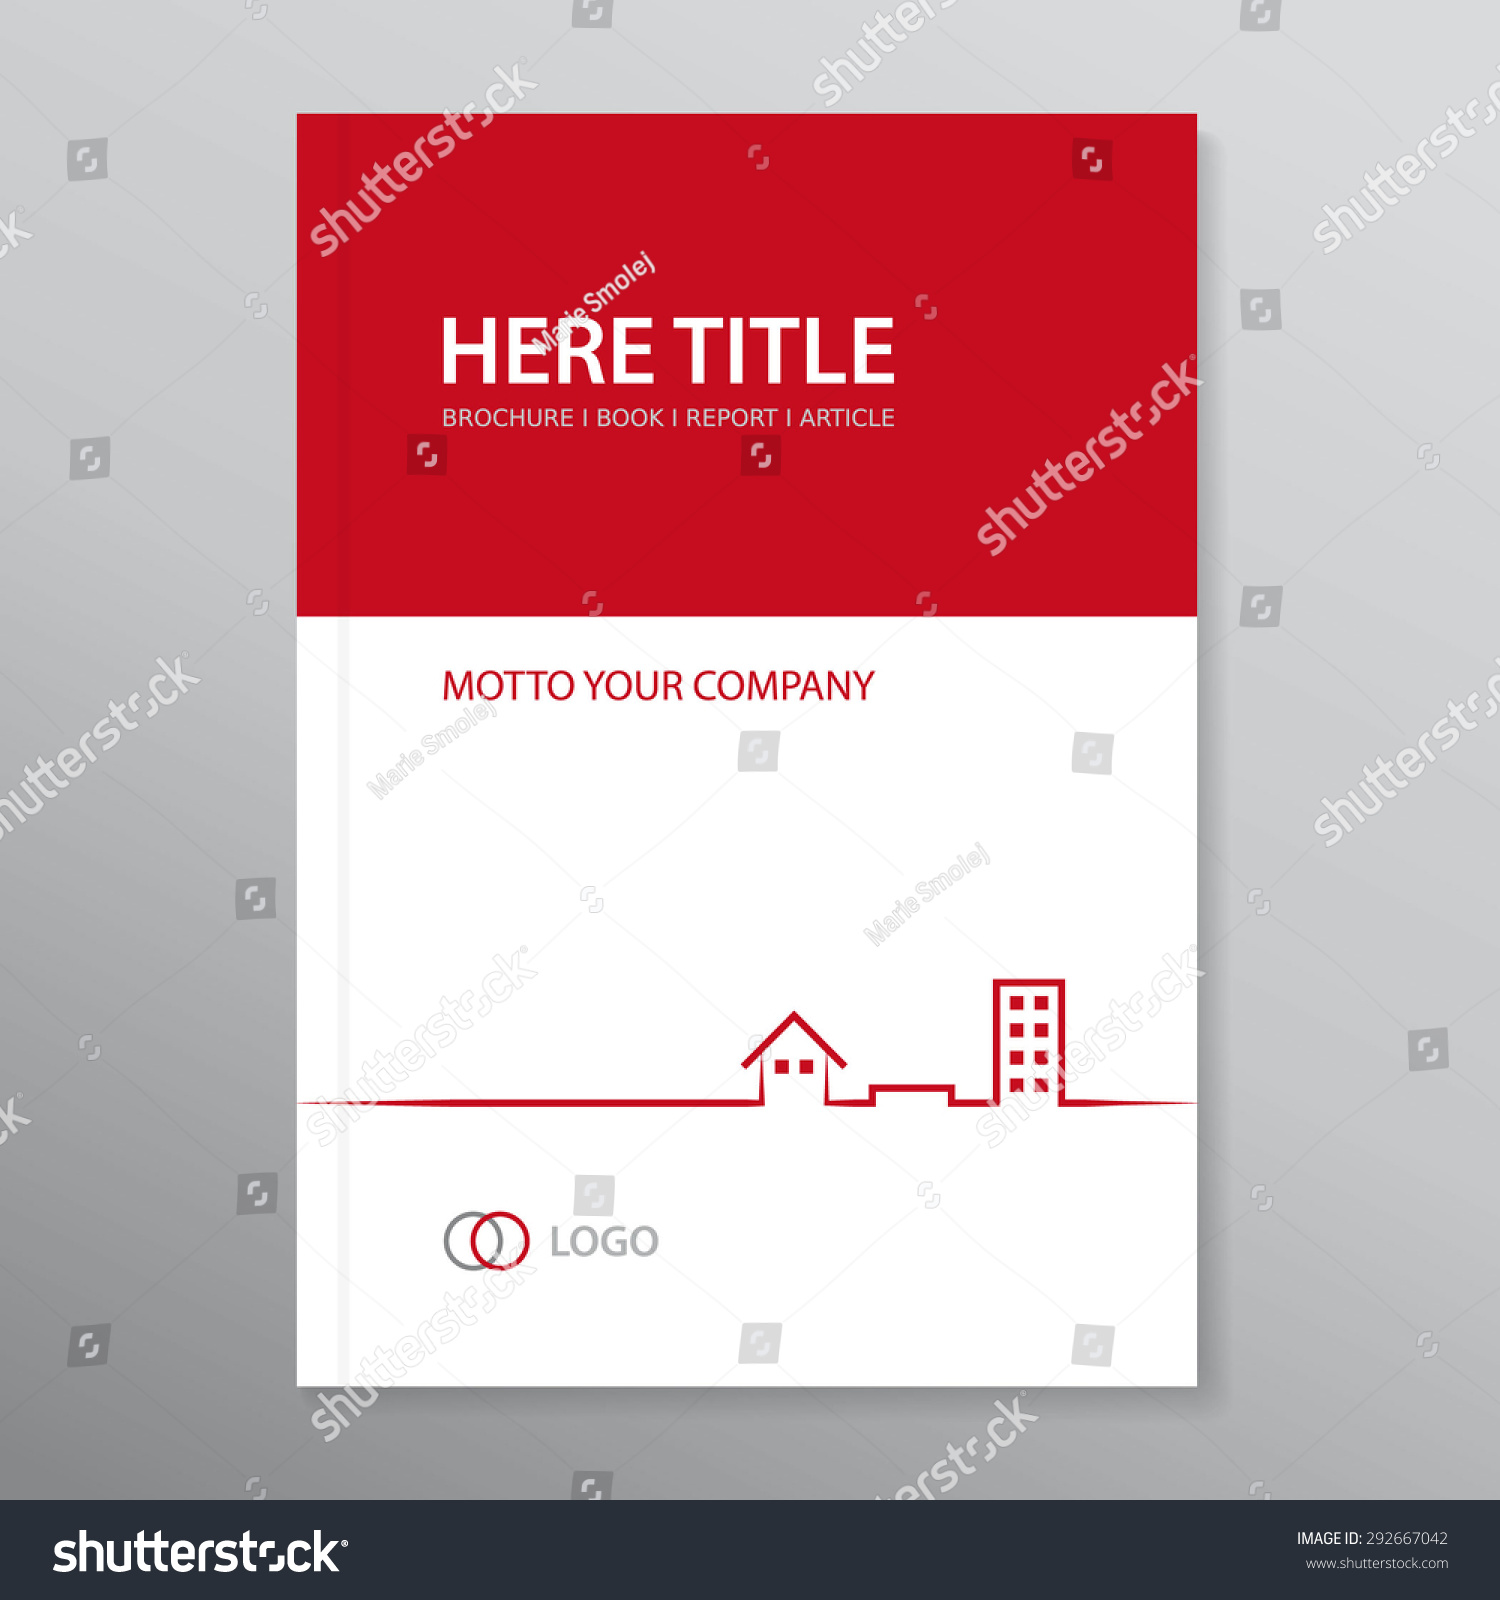 vector brochure annual report book cover stock vector  vector brochure annual report book cover audit report template icons of